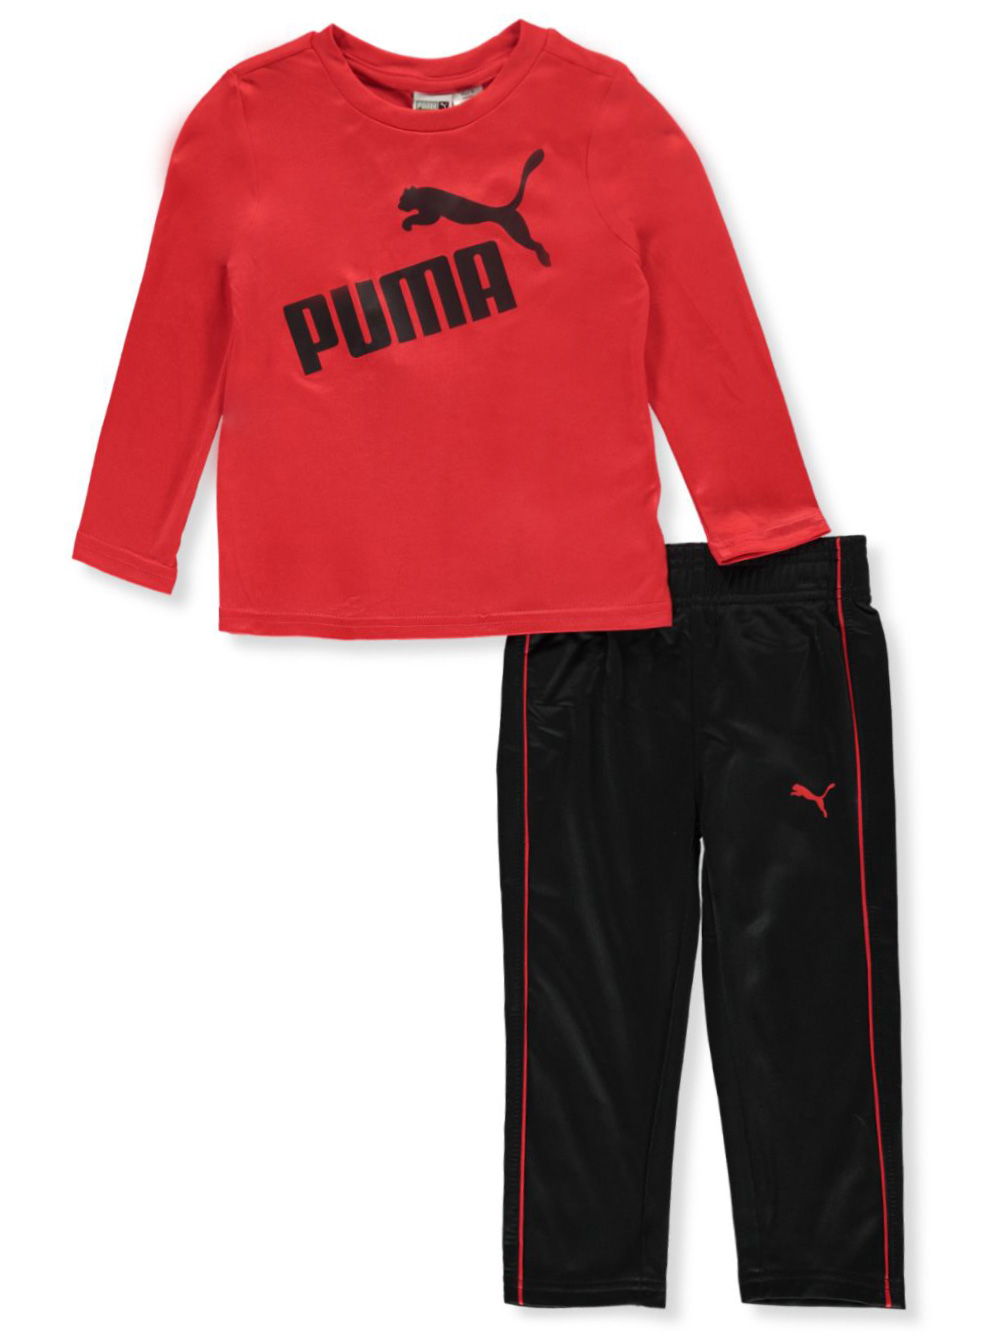 Boys Red Pant Sets